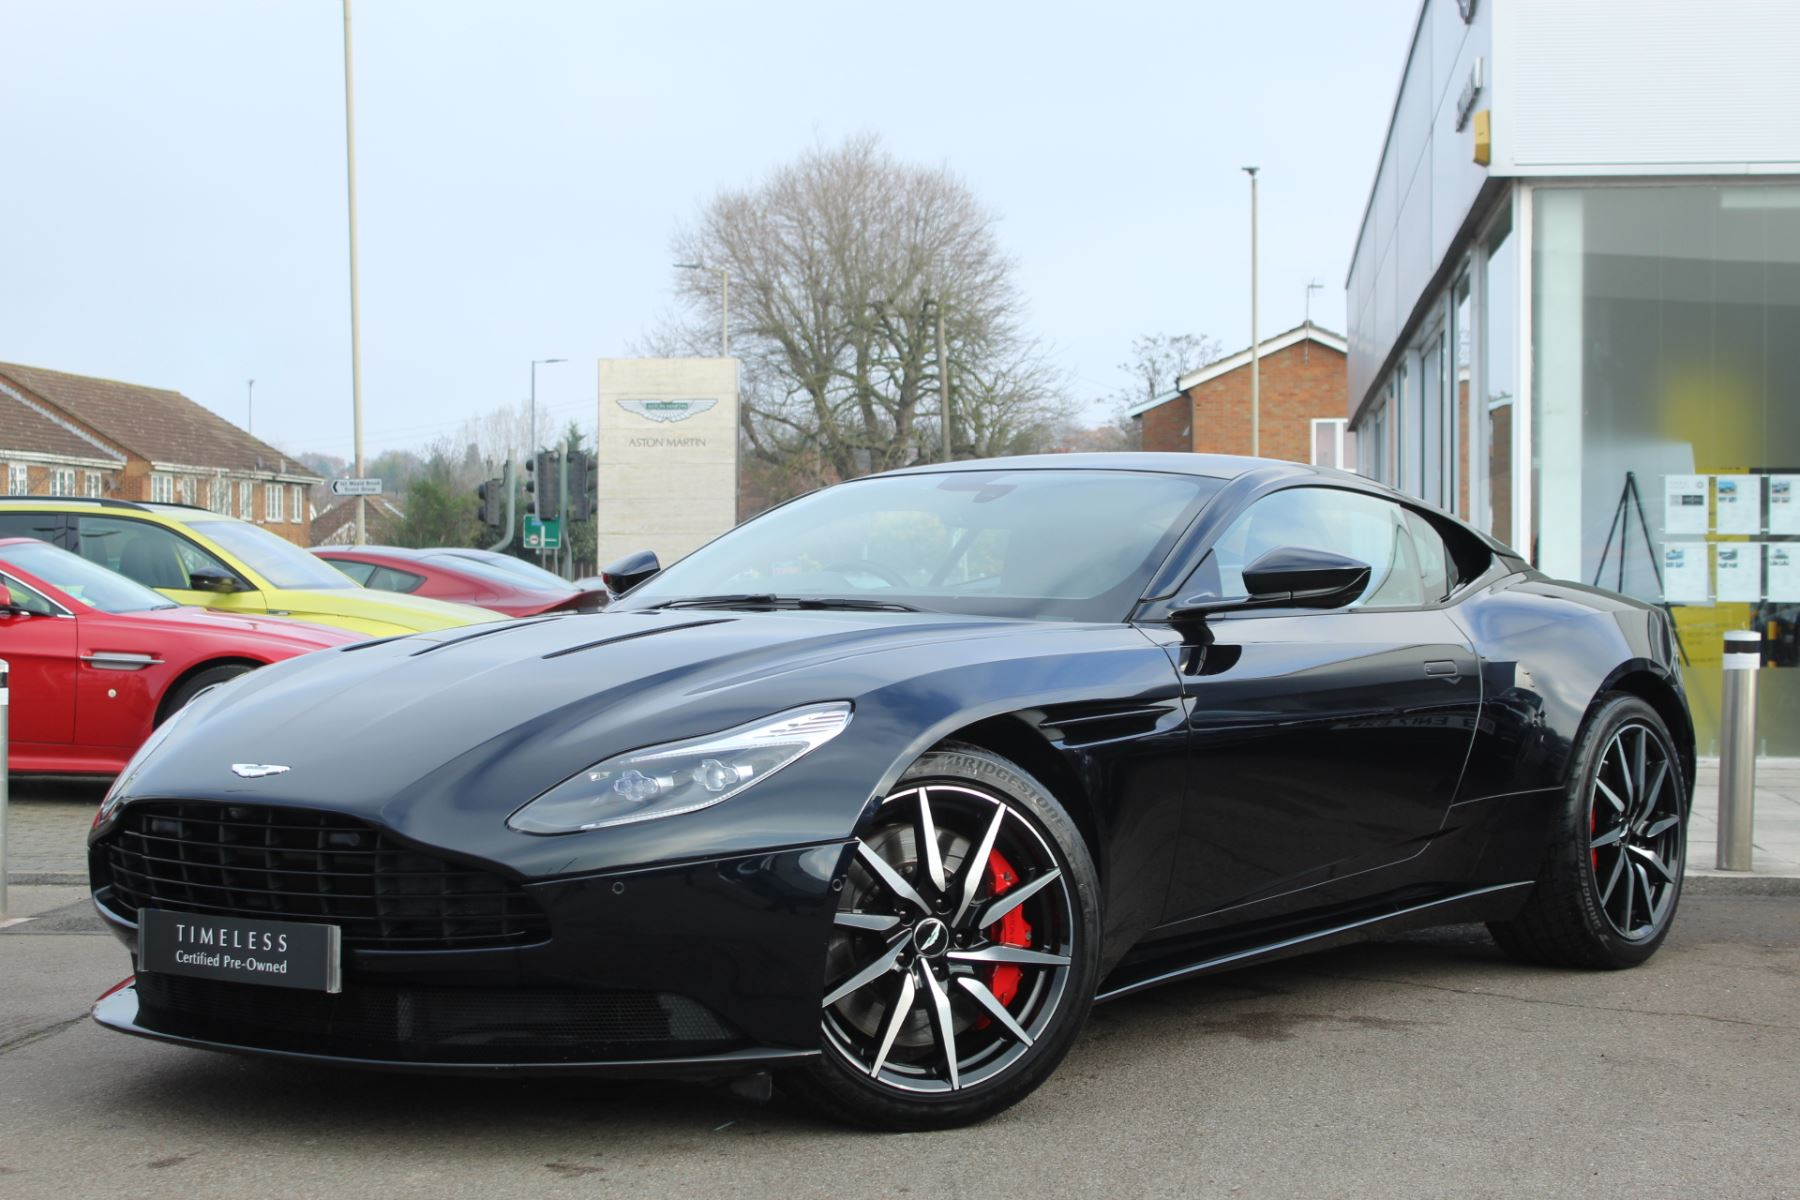 Used Aston Martin Db11 Cars For Sale Grange